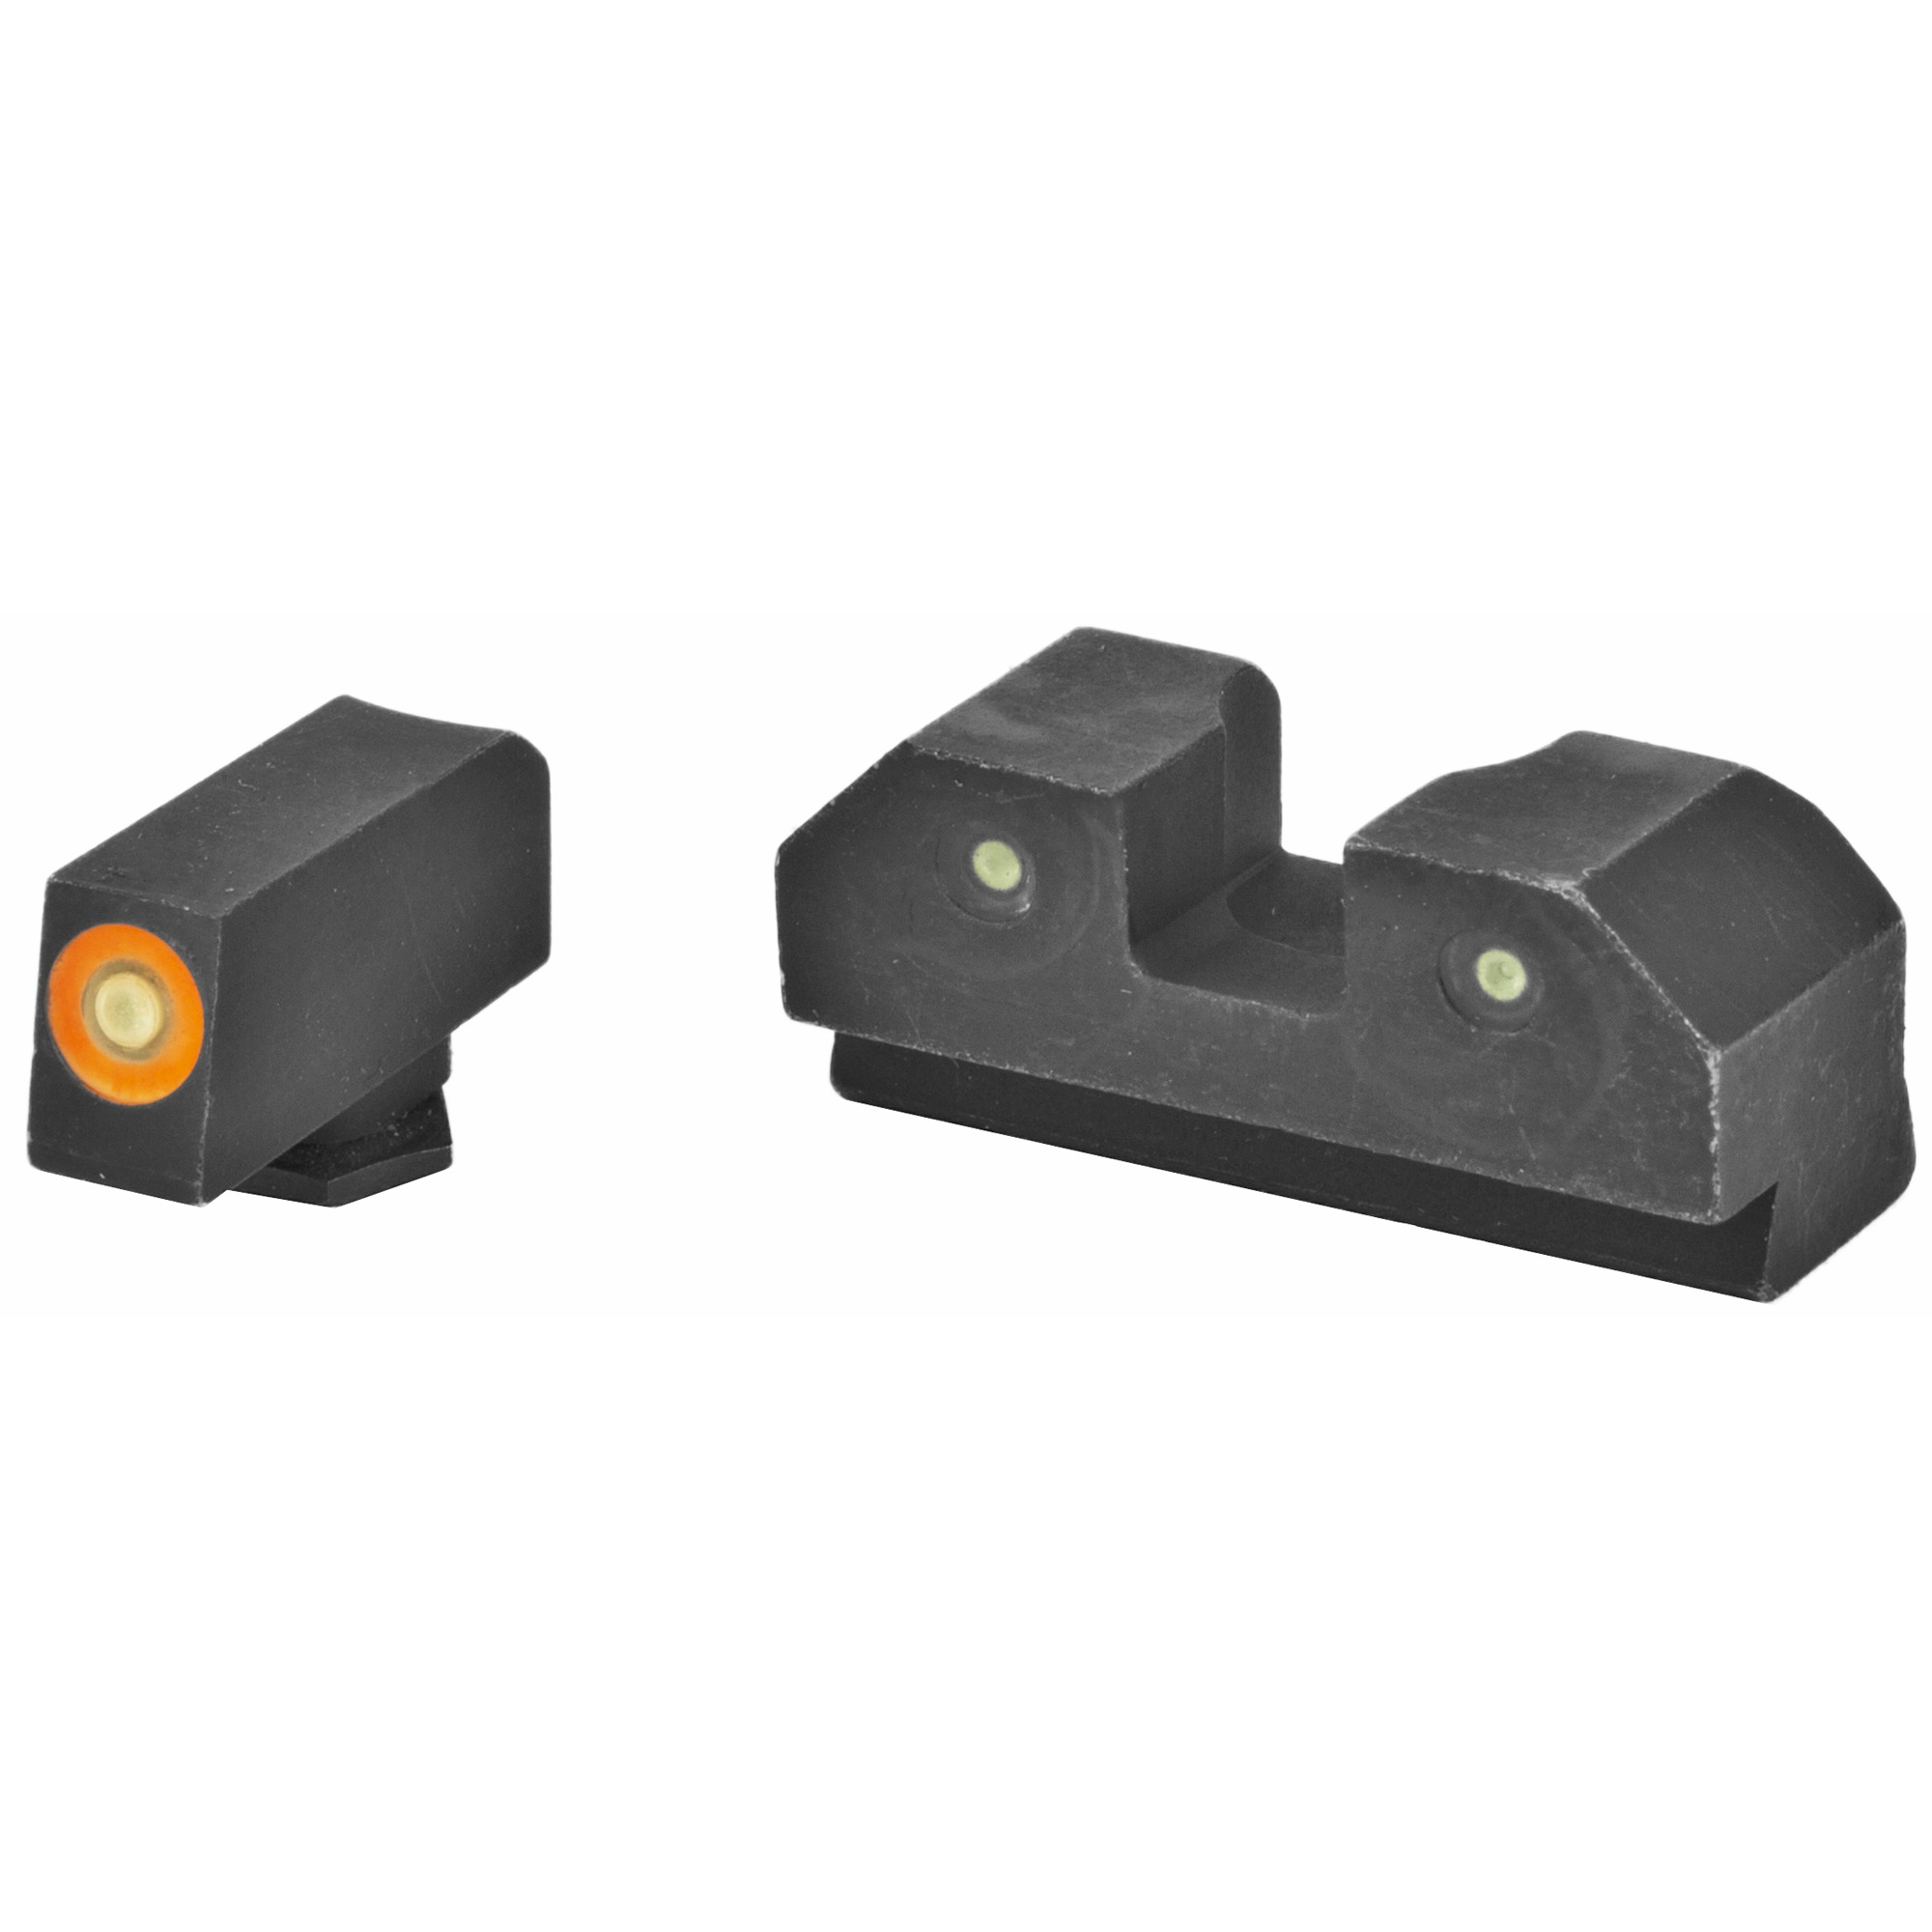 XS Sights Xs R3d Sght For Glk Lg Frame Orn